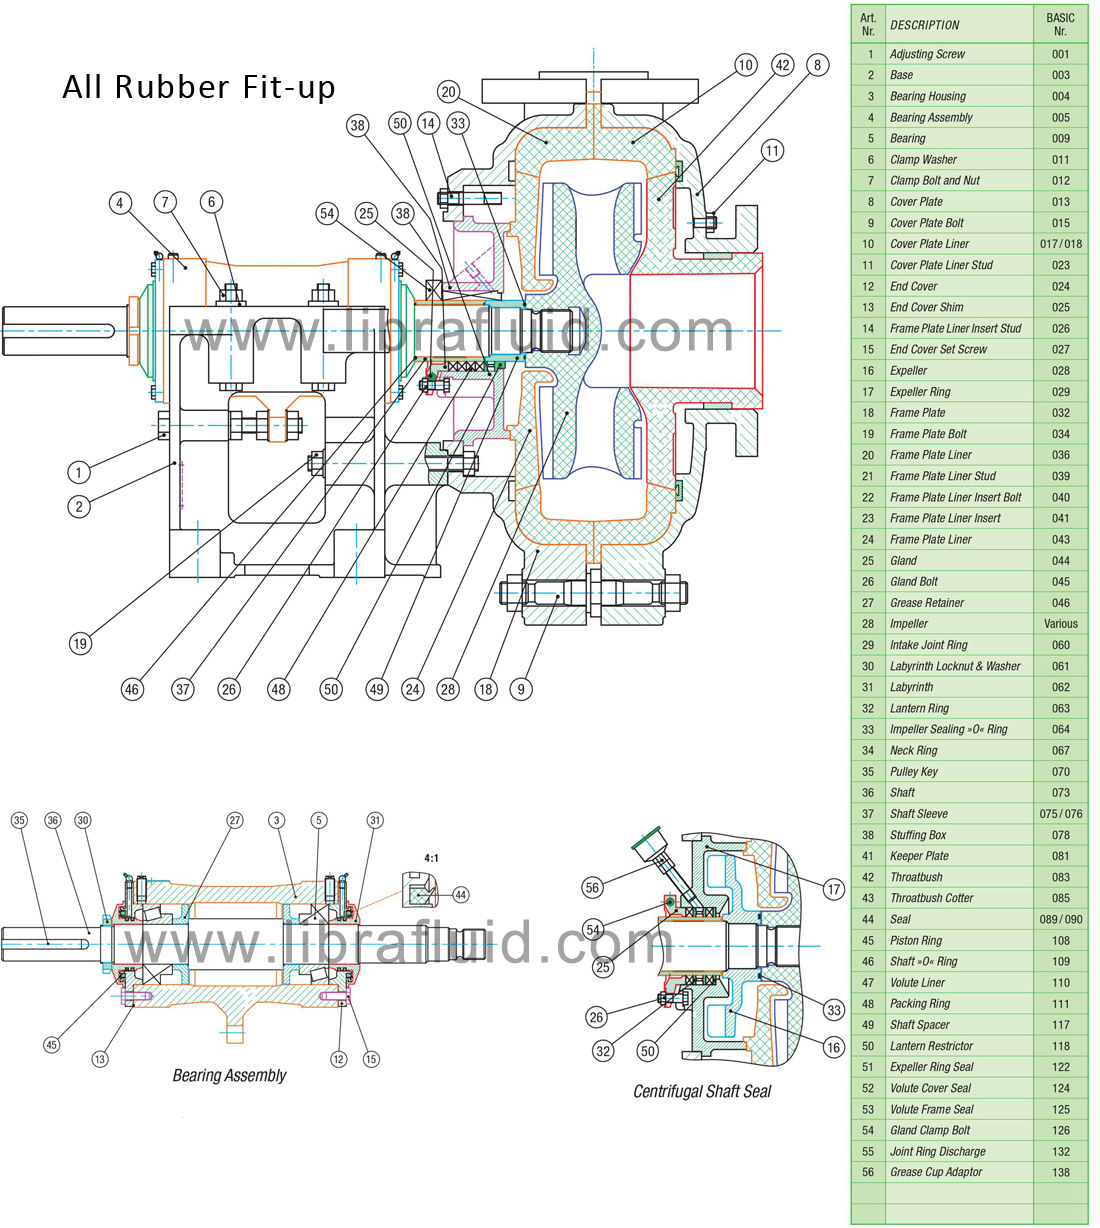 Rubber slurry pump assembly drawing